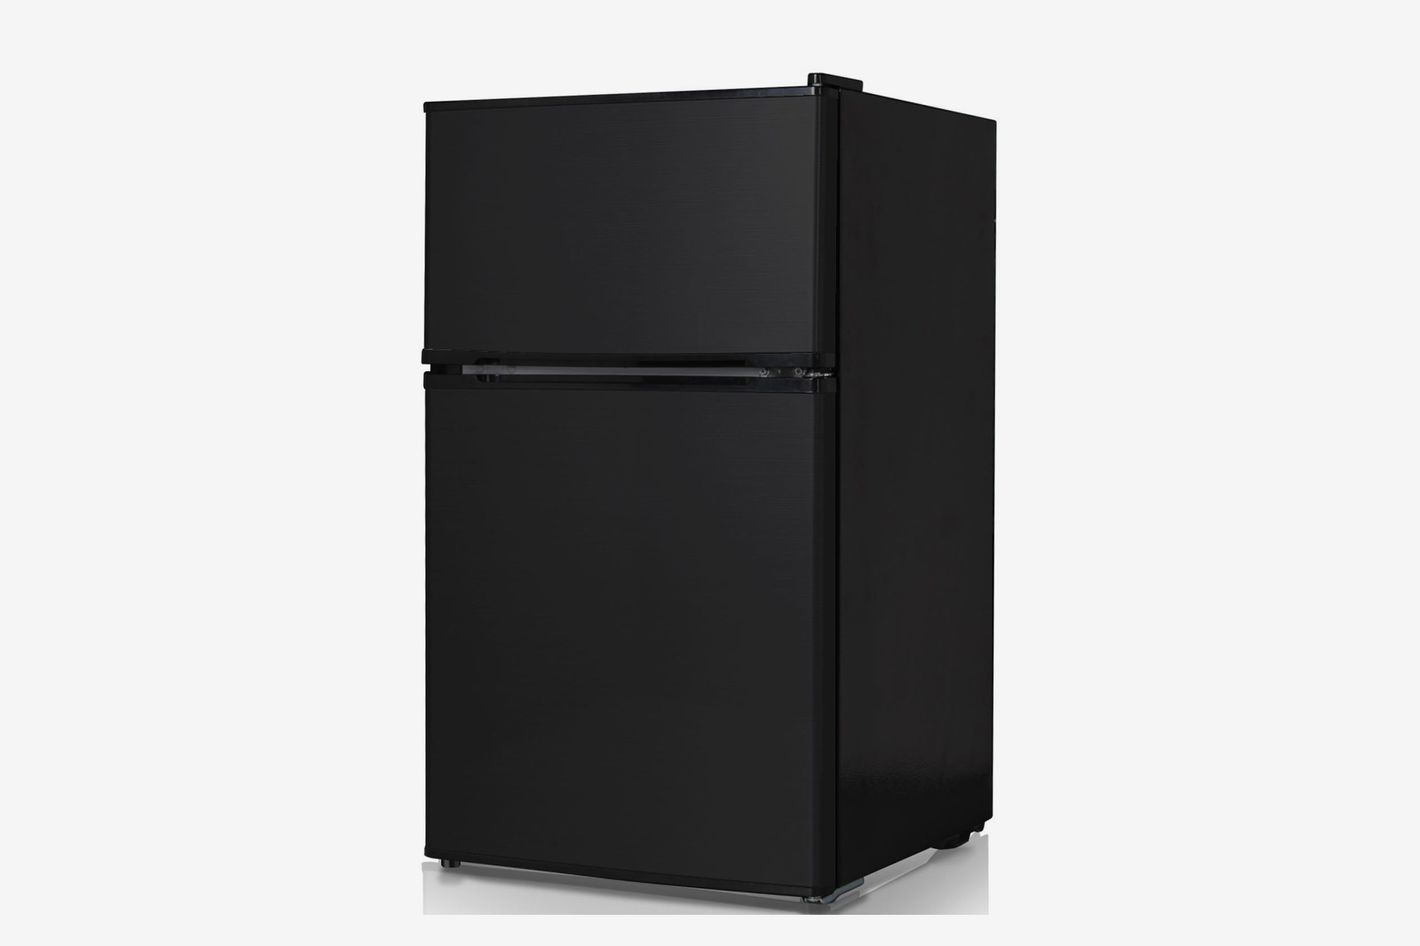 An All Black Mini Fridge With Two Doors One For Freezer